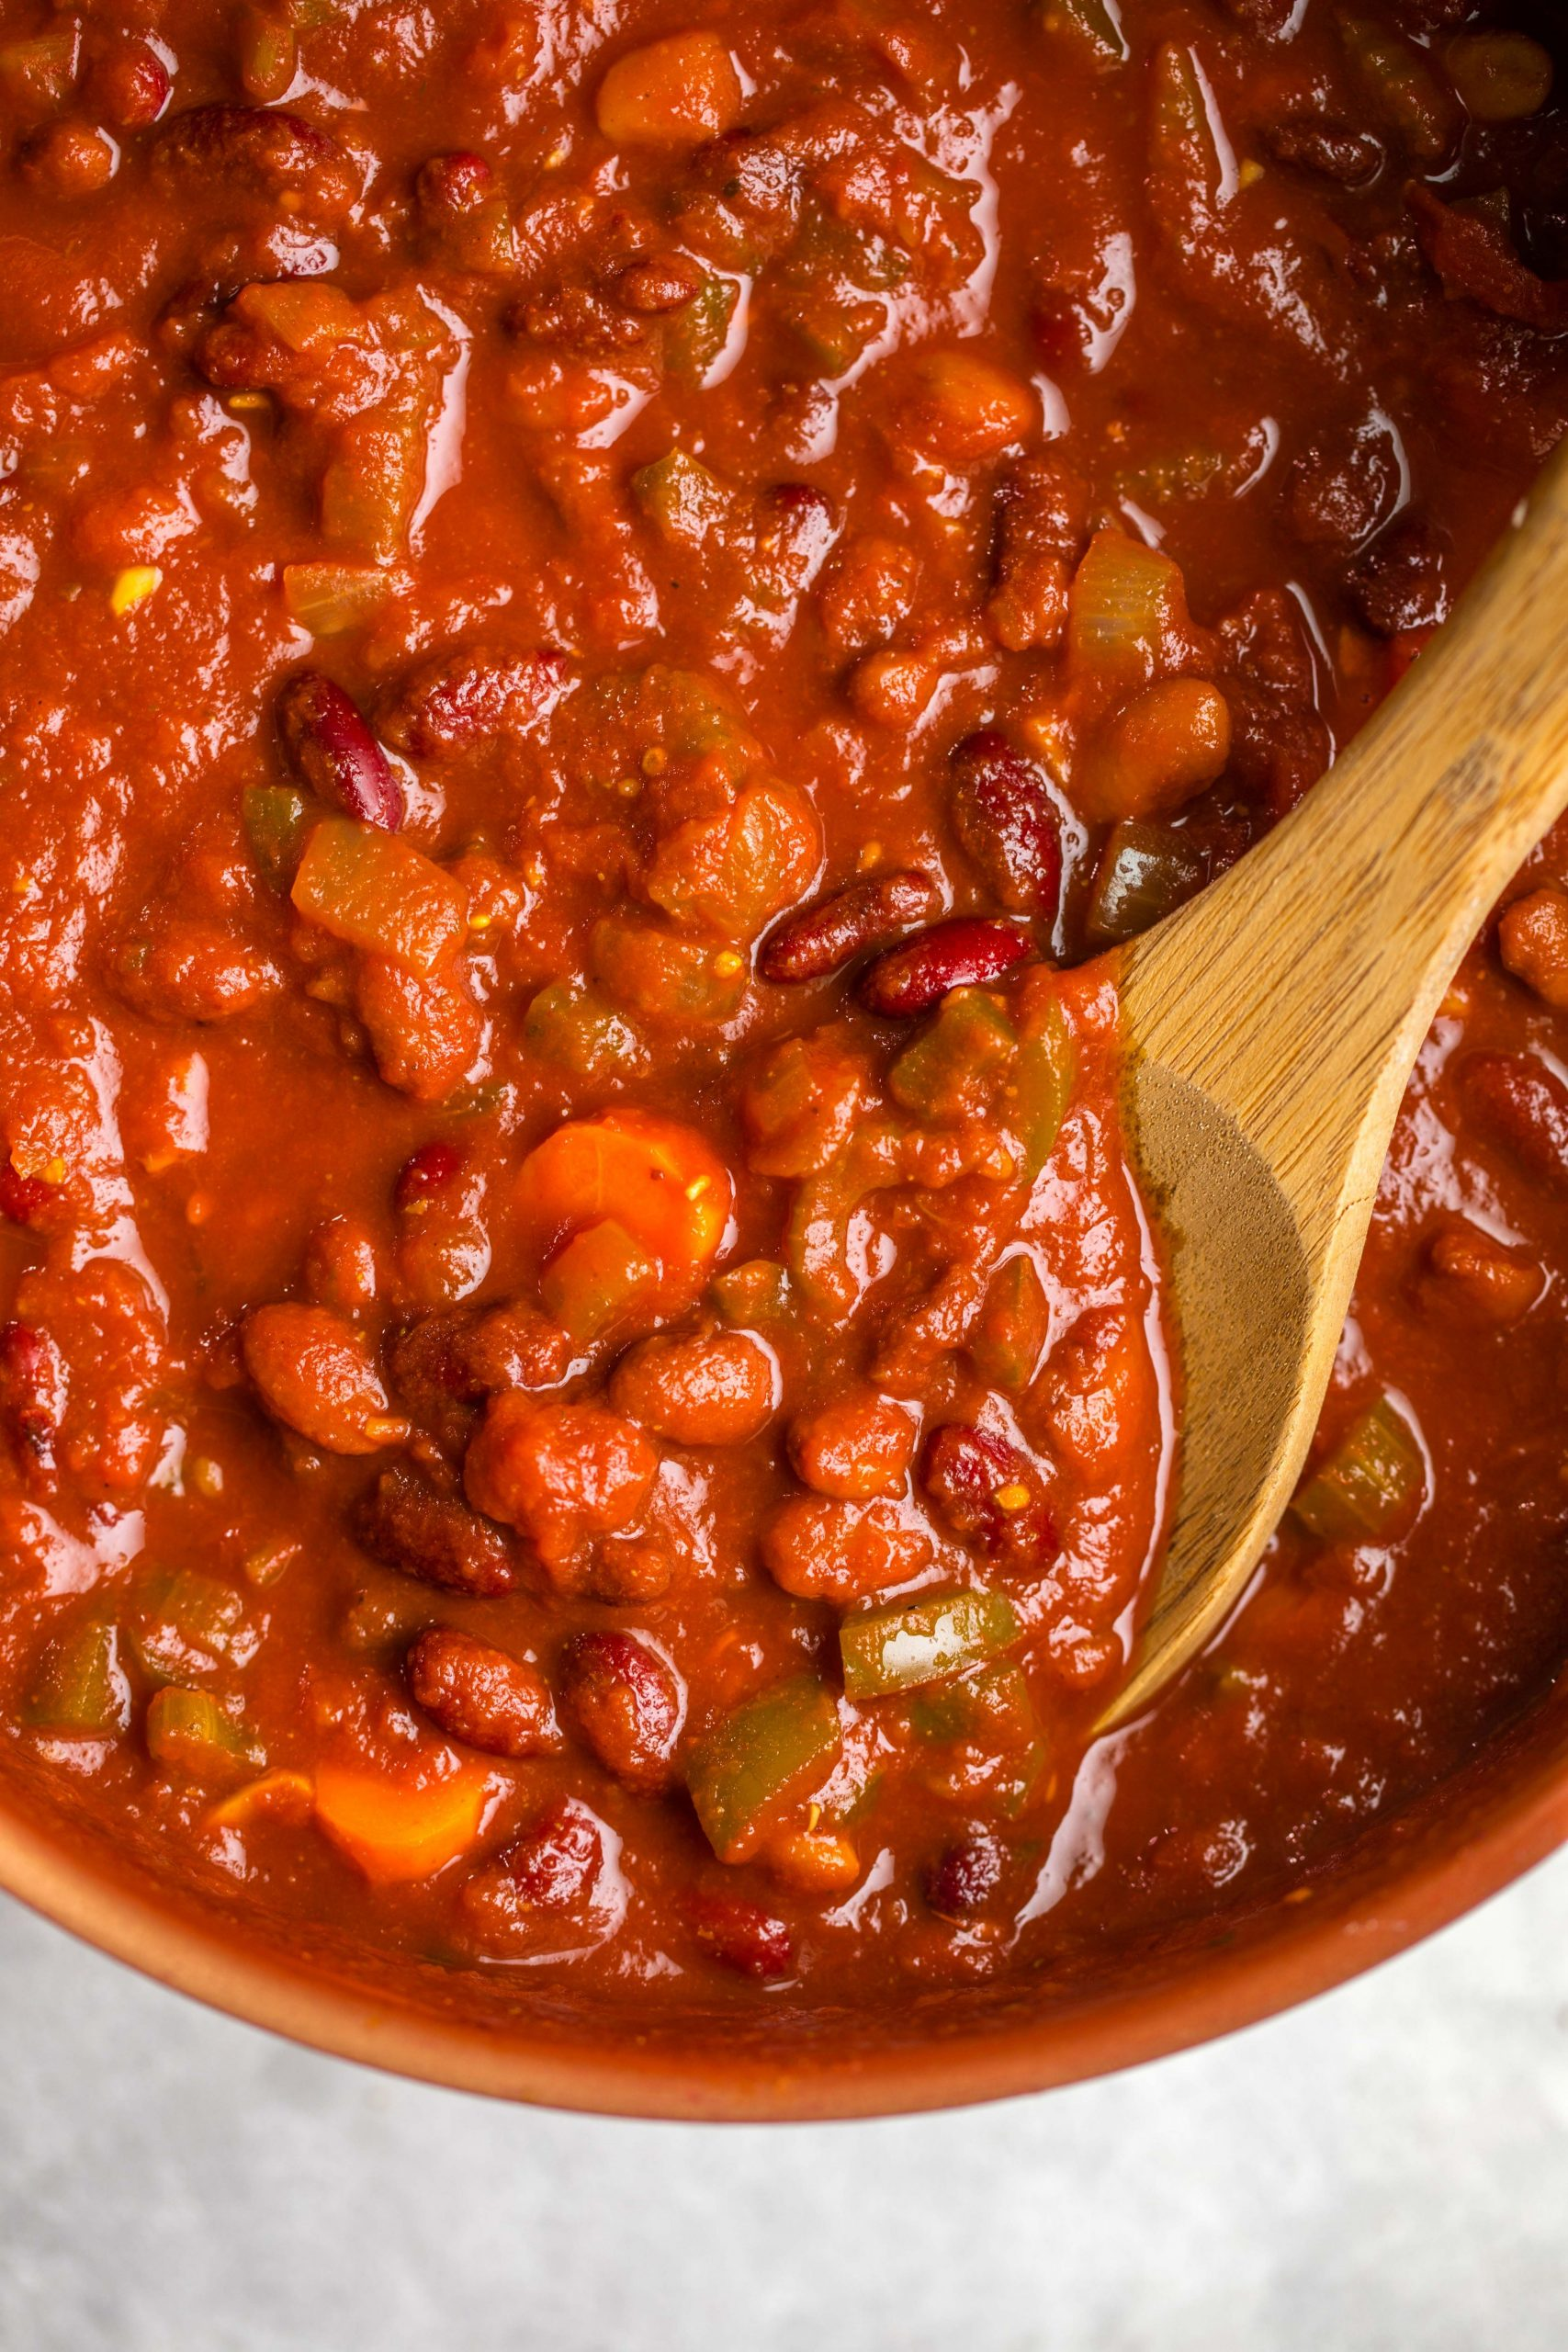 Easy Vegan Chili Recipe - From My Bowl